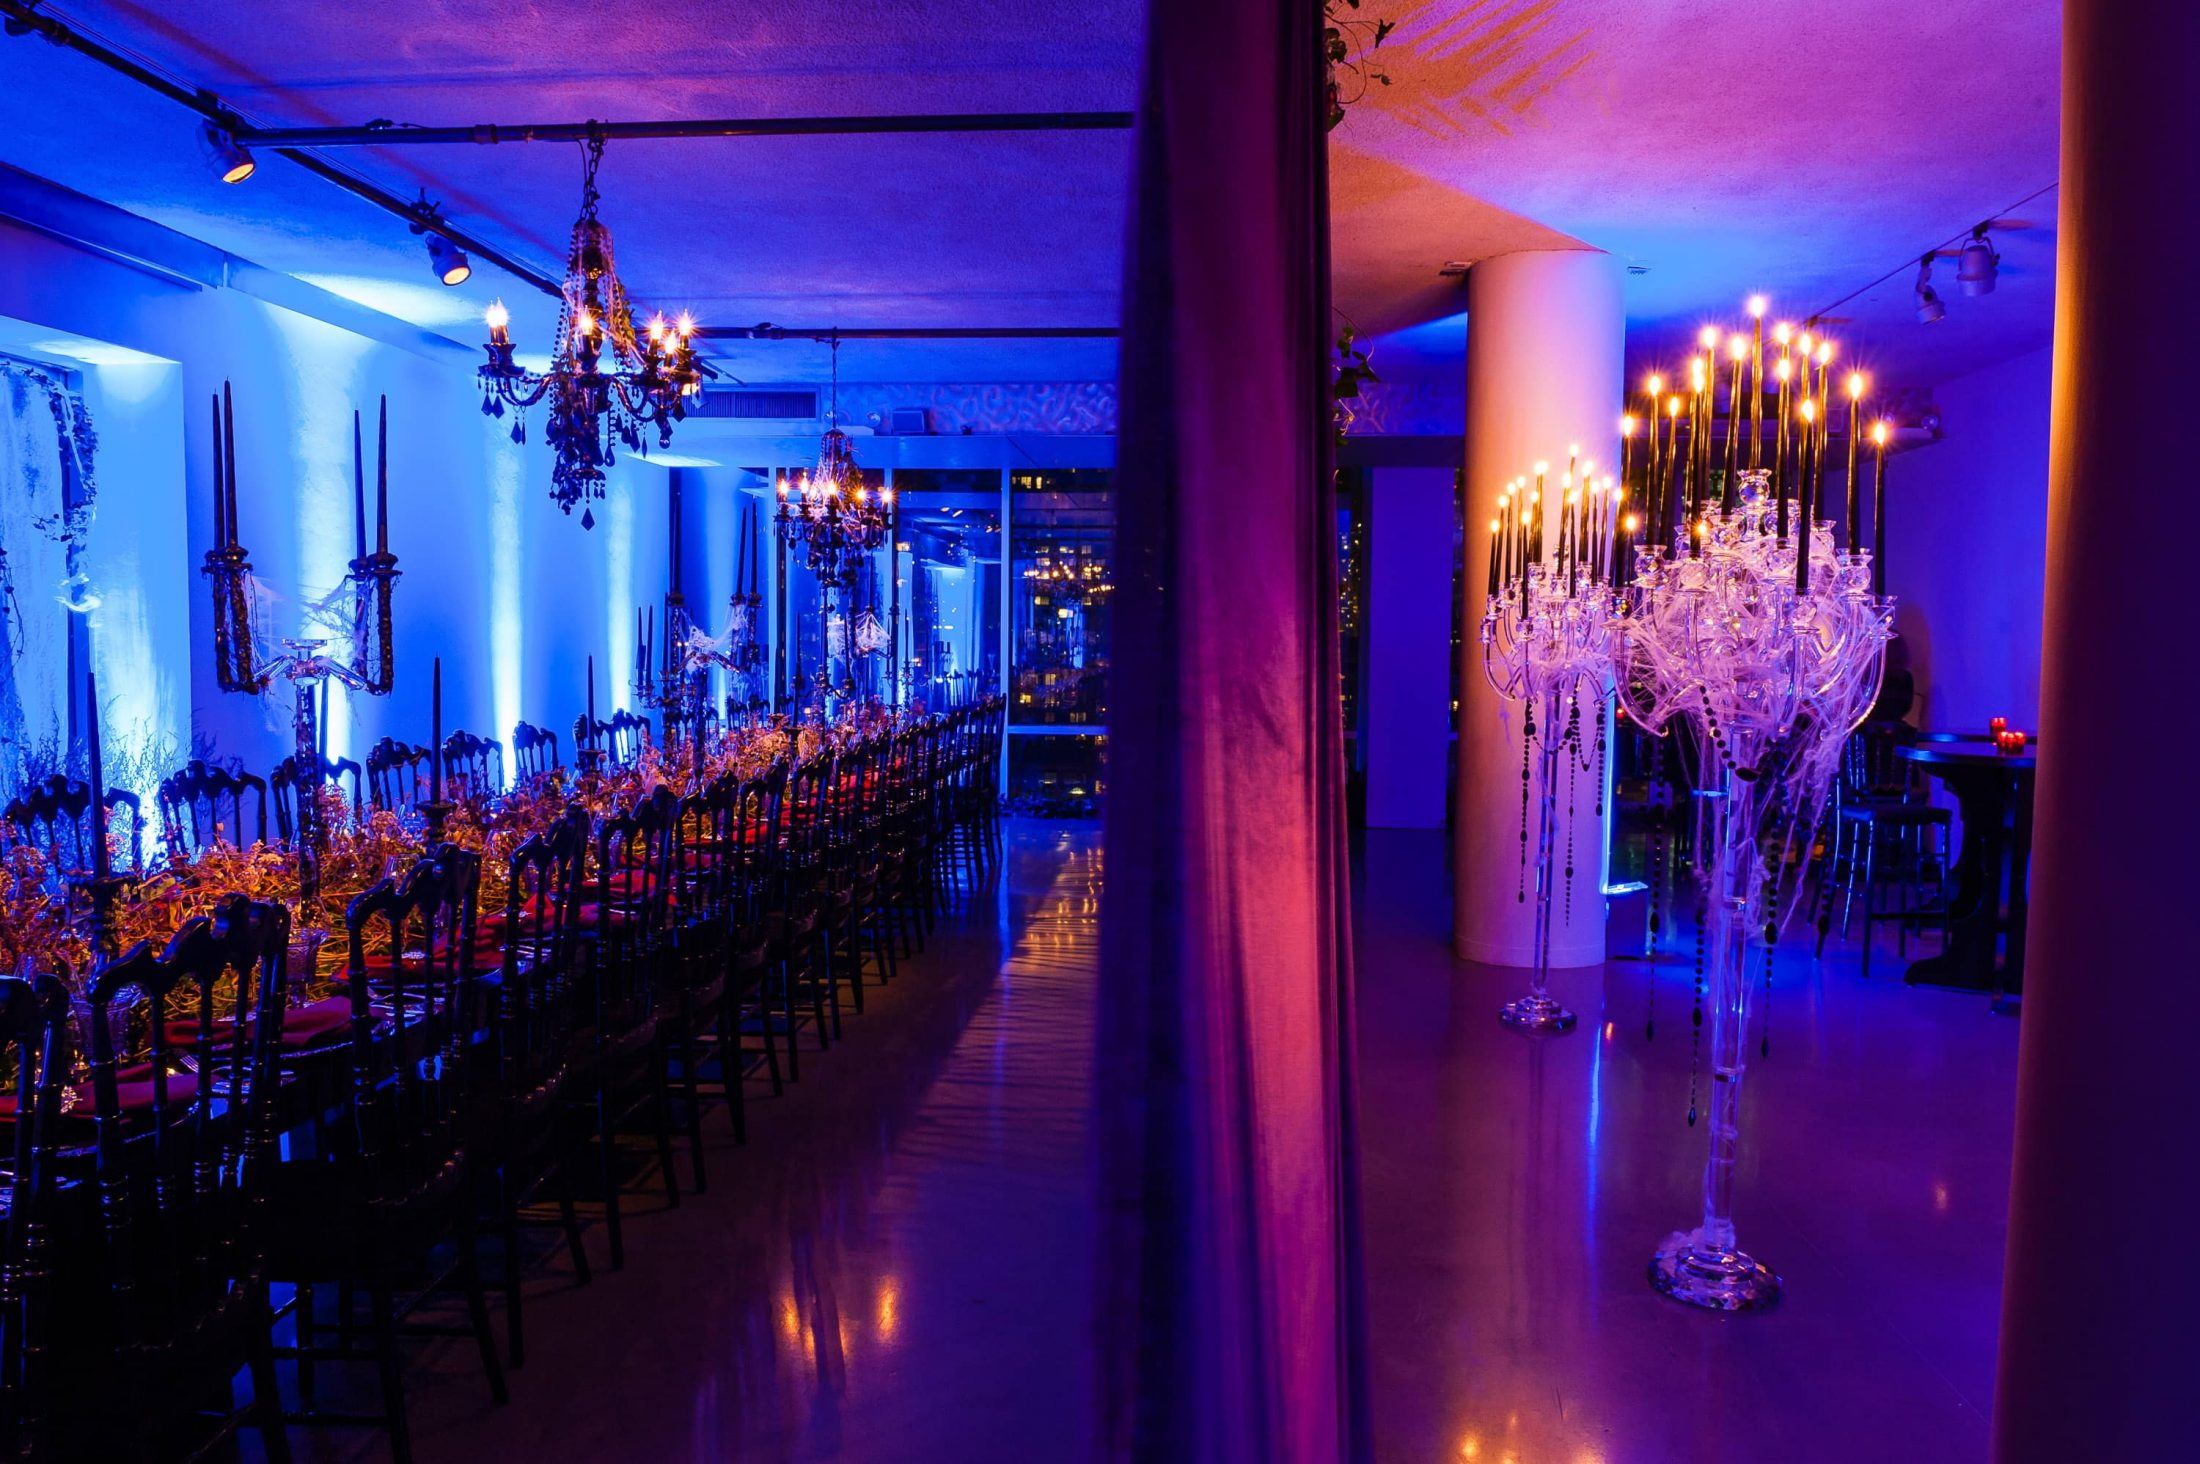 Spooky decor for the seated Monster Mash at this epic halloween party at The Standard in NYC | Photo by Gruber Photographers